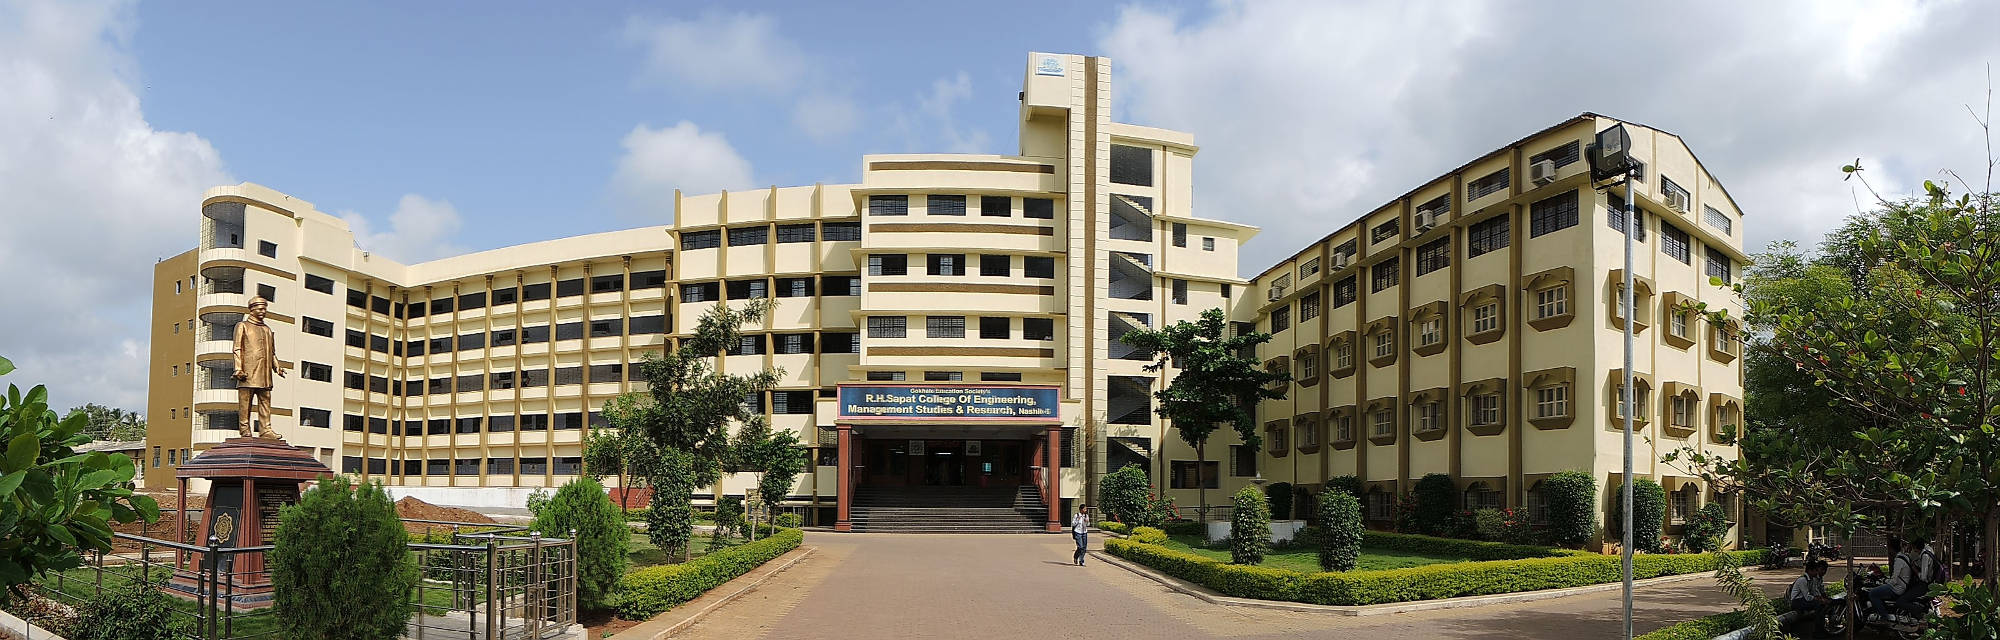 Gokhale Education Society'S R. H. Sapat College Of Engineering, Management Studies and Research